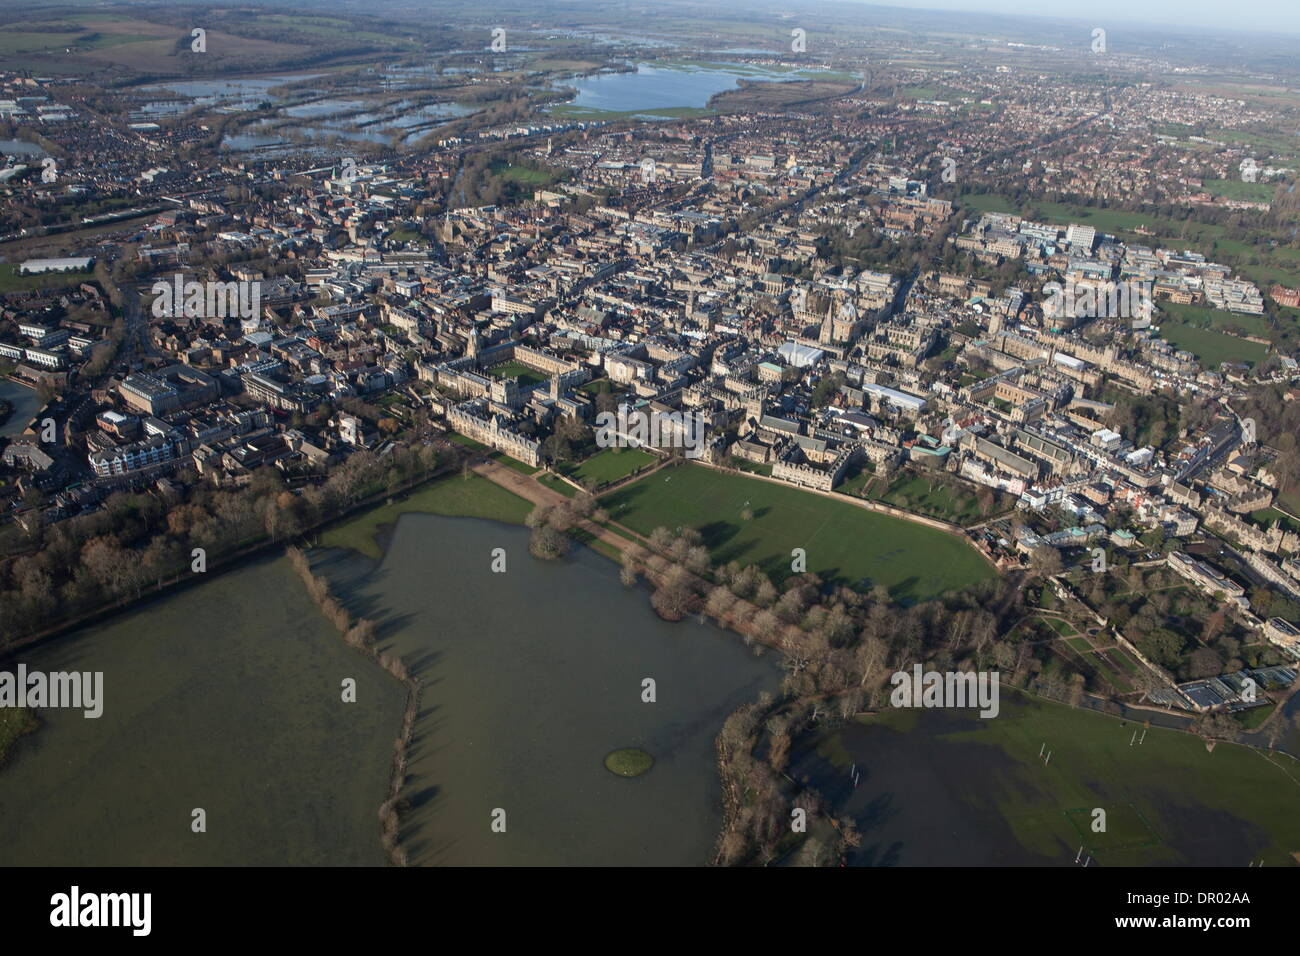 Oxford, UK. 14th January 2014. The Thames, Oxford in  flood .  View of Oxford, North West  with Portmeadow to the top , a natural flood plain.  The controversial University buildings  of Roger Dudman Way  can  be seen ( centre )  along railway lines on the southern edge of Portmeadow Credit:  adrian arbib/Alamy Live News - Stock Image